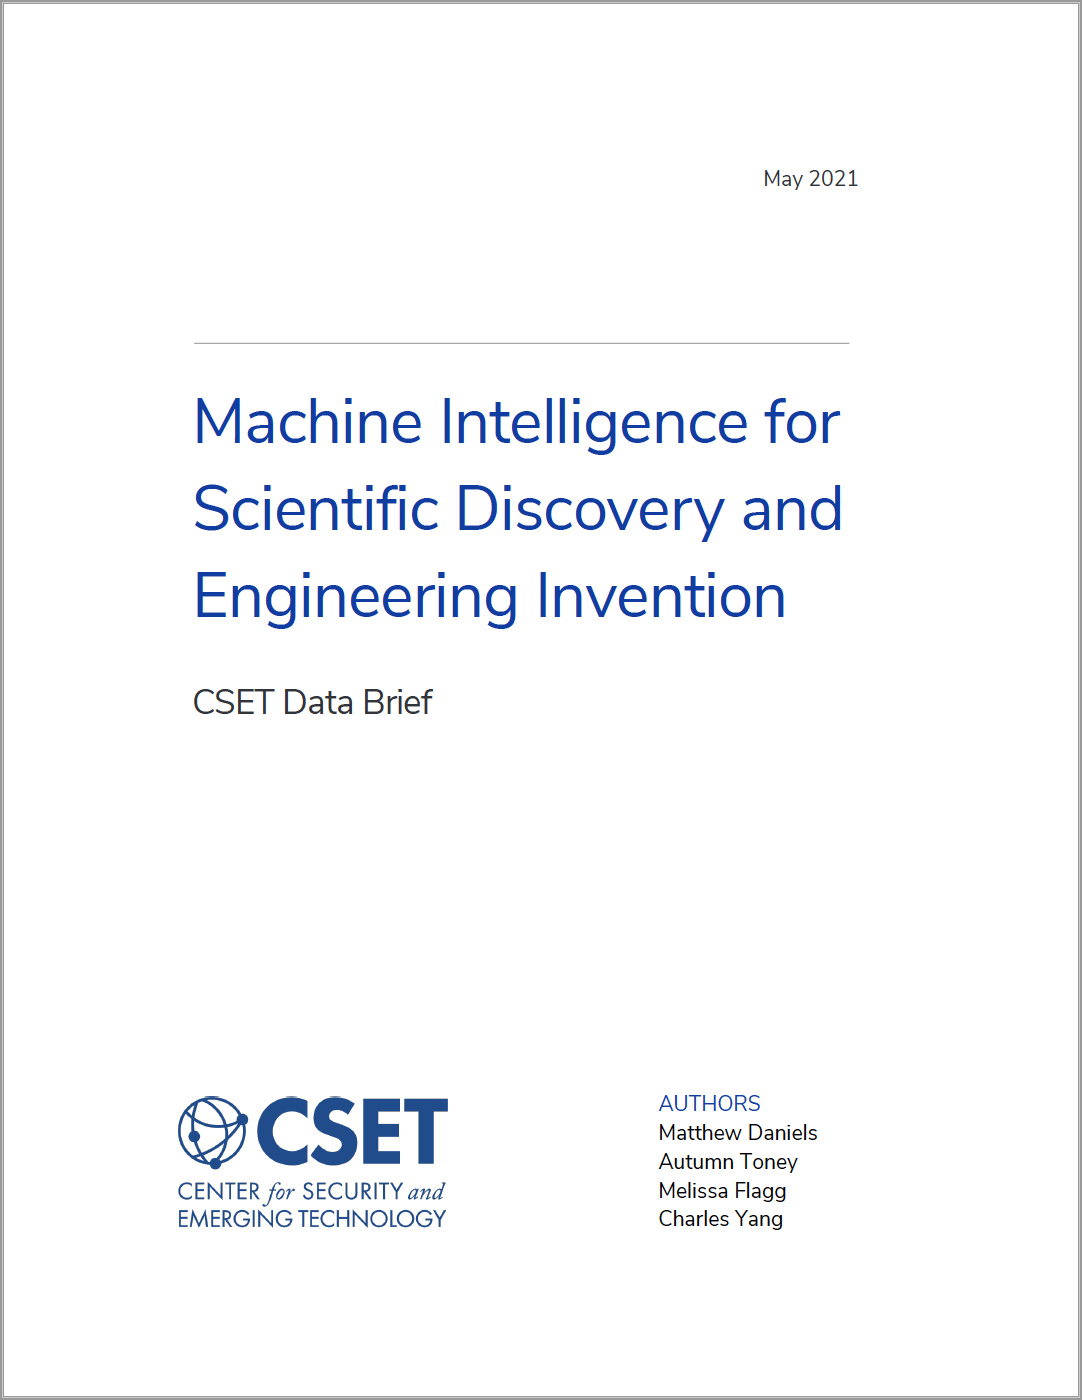 Machine Intelligence for Scientific Discovery and Engineering Invention_Image